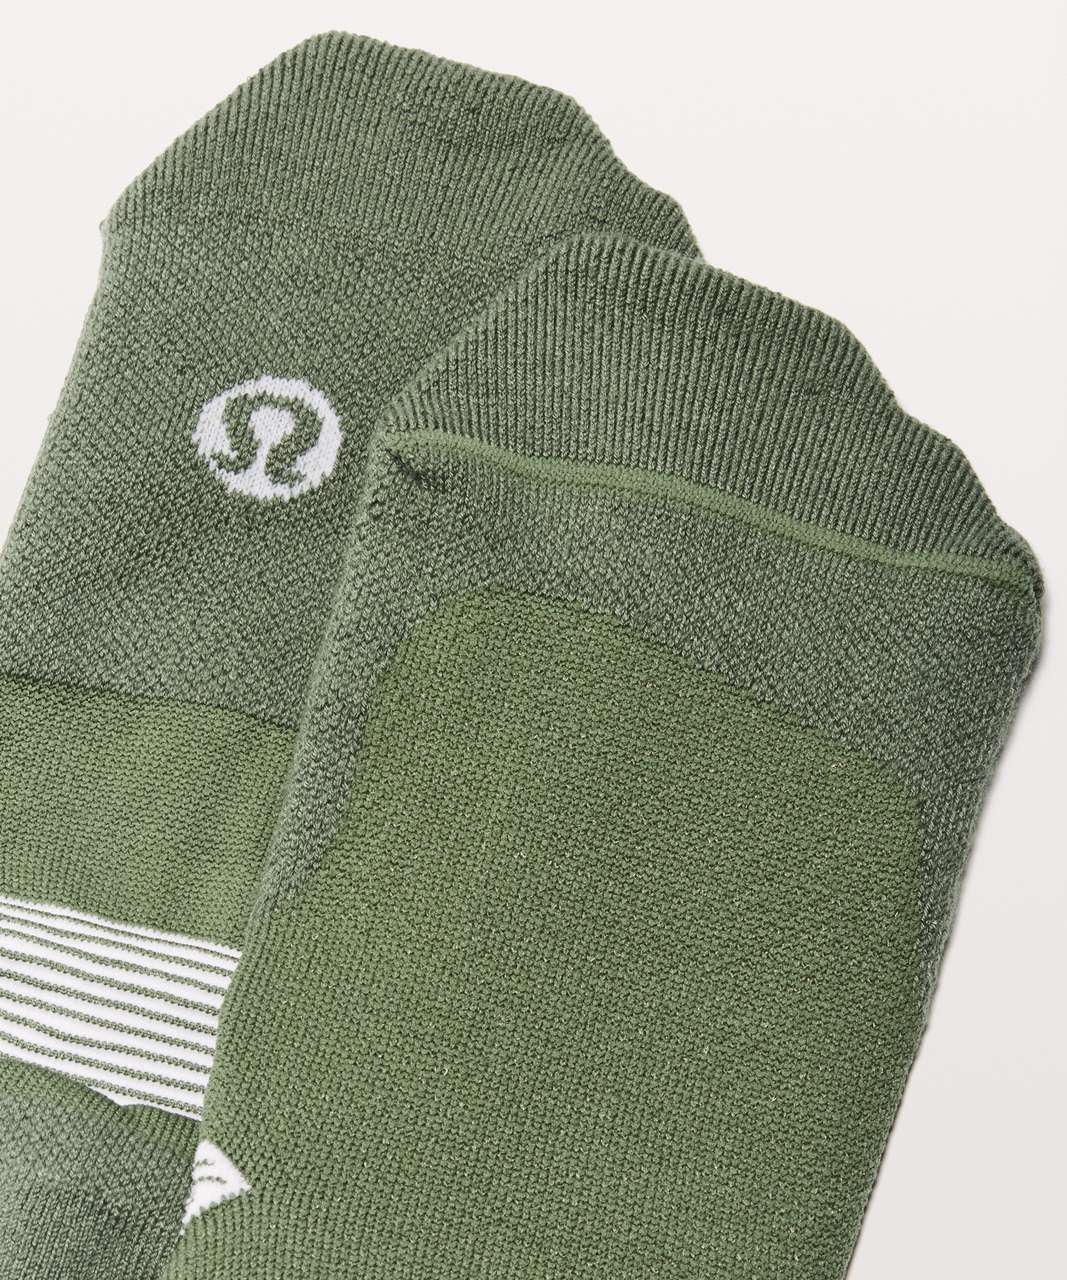 Lululemon T.H.E. Sock *Silver - Green Twill / White